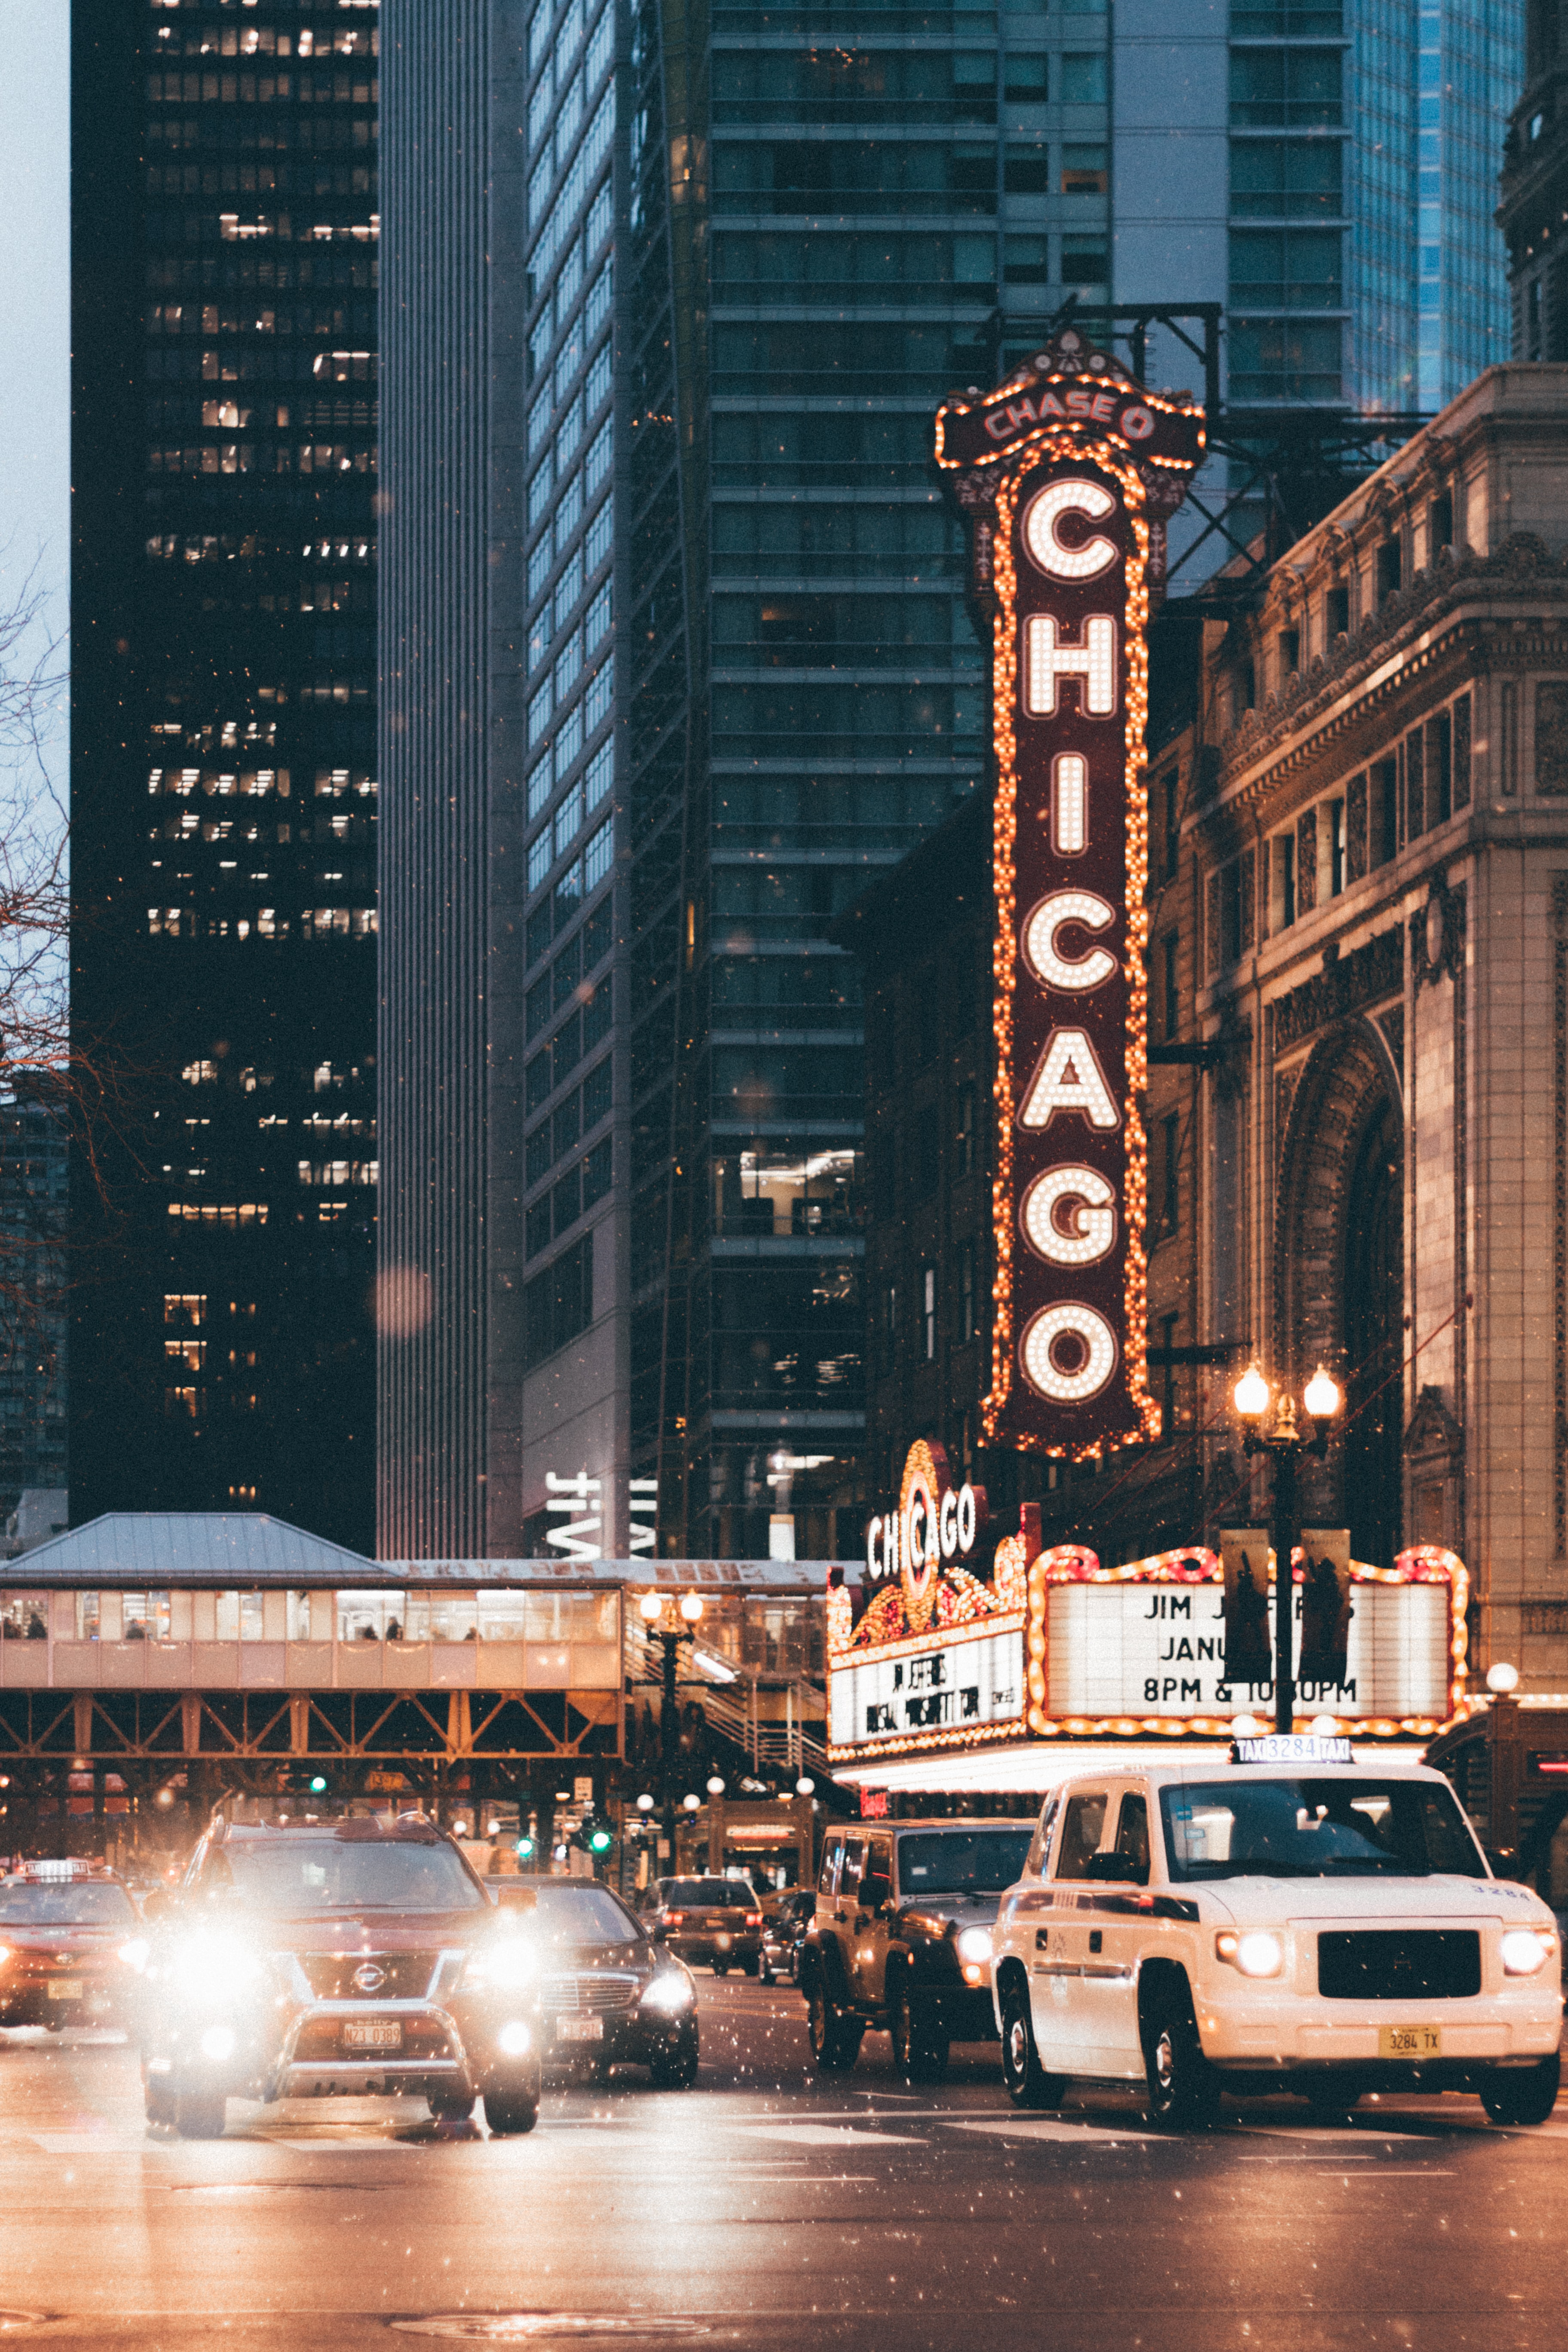 Chicago Wallpapers Free Hd Download 500 Hq Unsplash